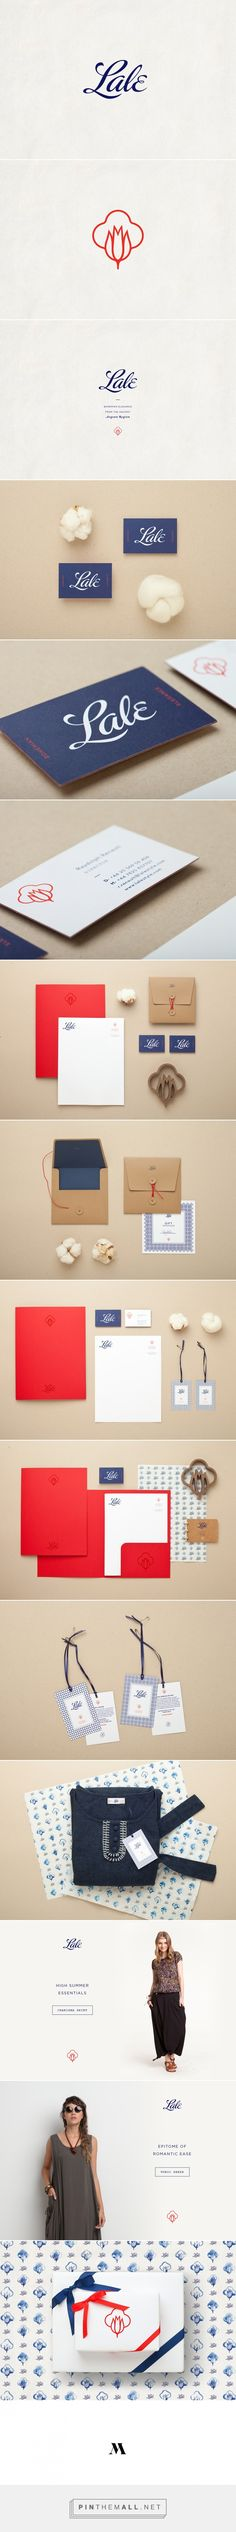 Lale on Behance... - a grouped images picture - Pin Them All